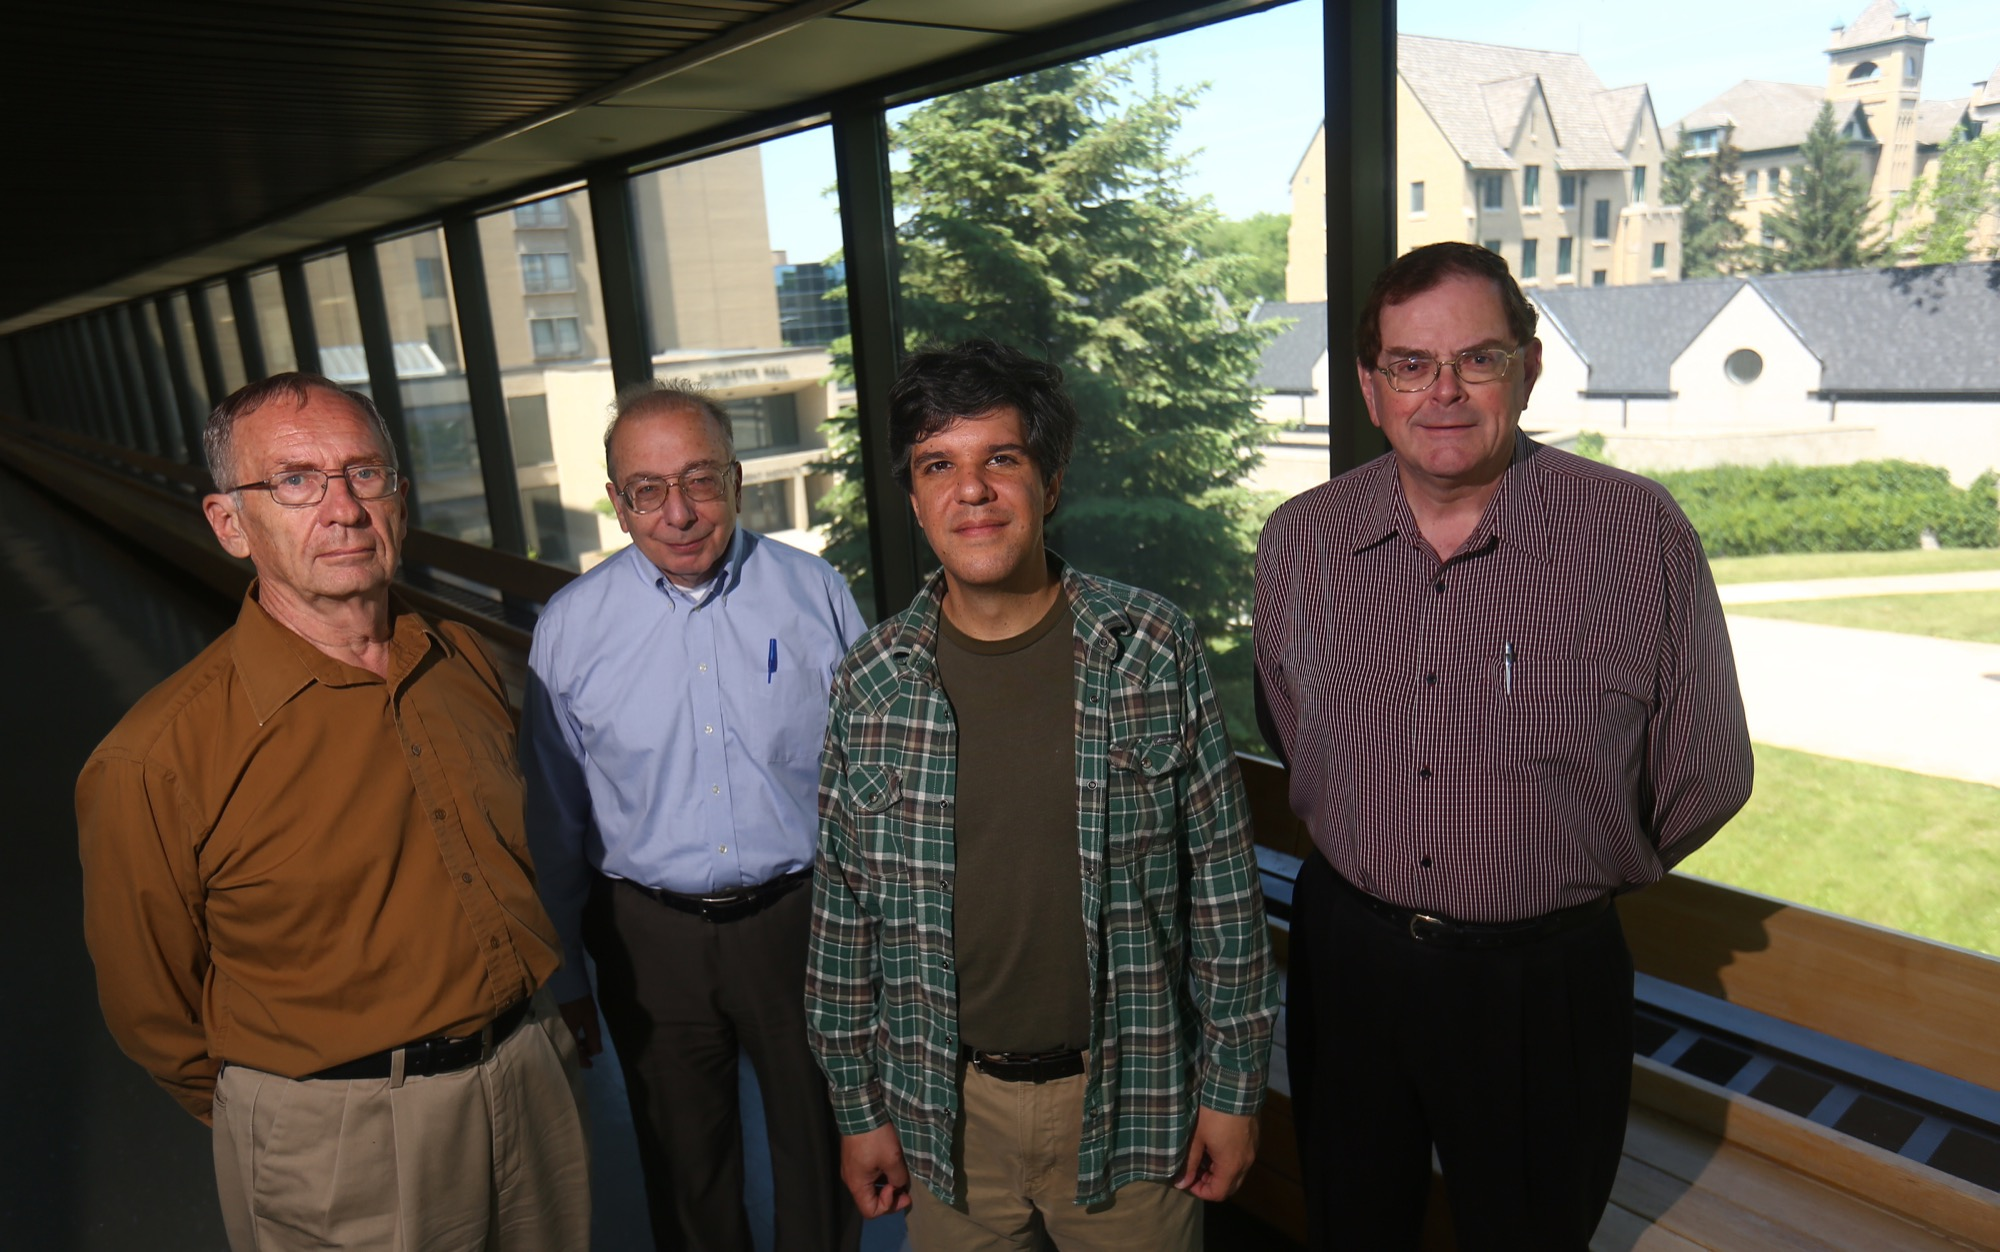 American astrophysicist Saul Adelman, second from the left, will be working alongside Brandon University physics and astronomy professors John Rice, left, Tyler Foster and Austin Gulliver, right, in the faculty of science.